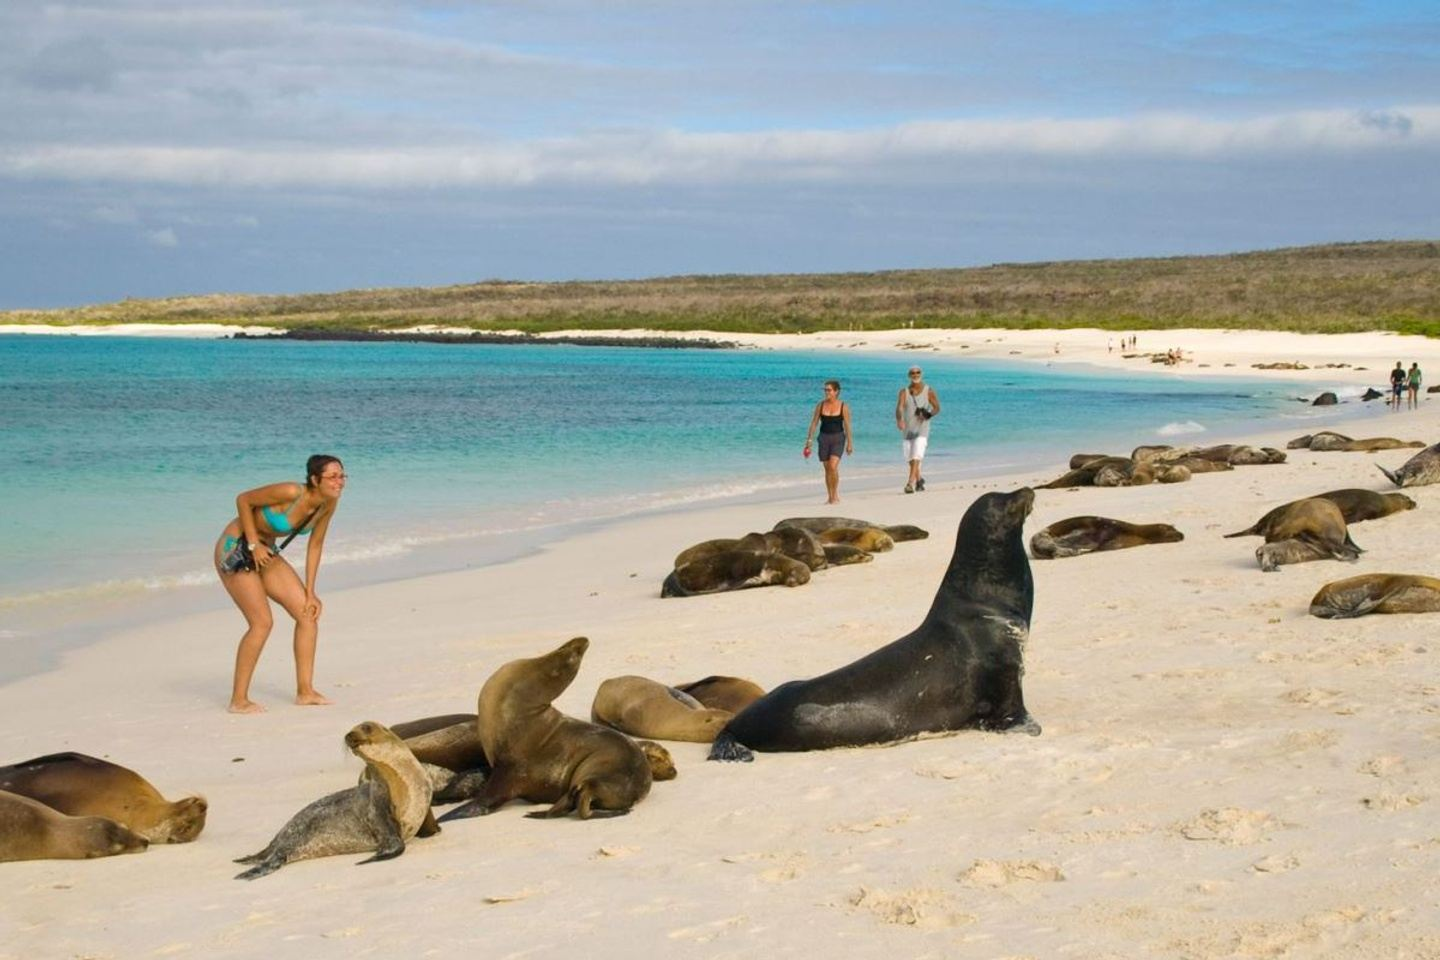 Mission Paradise + Spanish classes on the Galapagos Islands